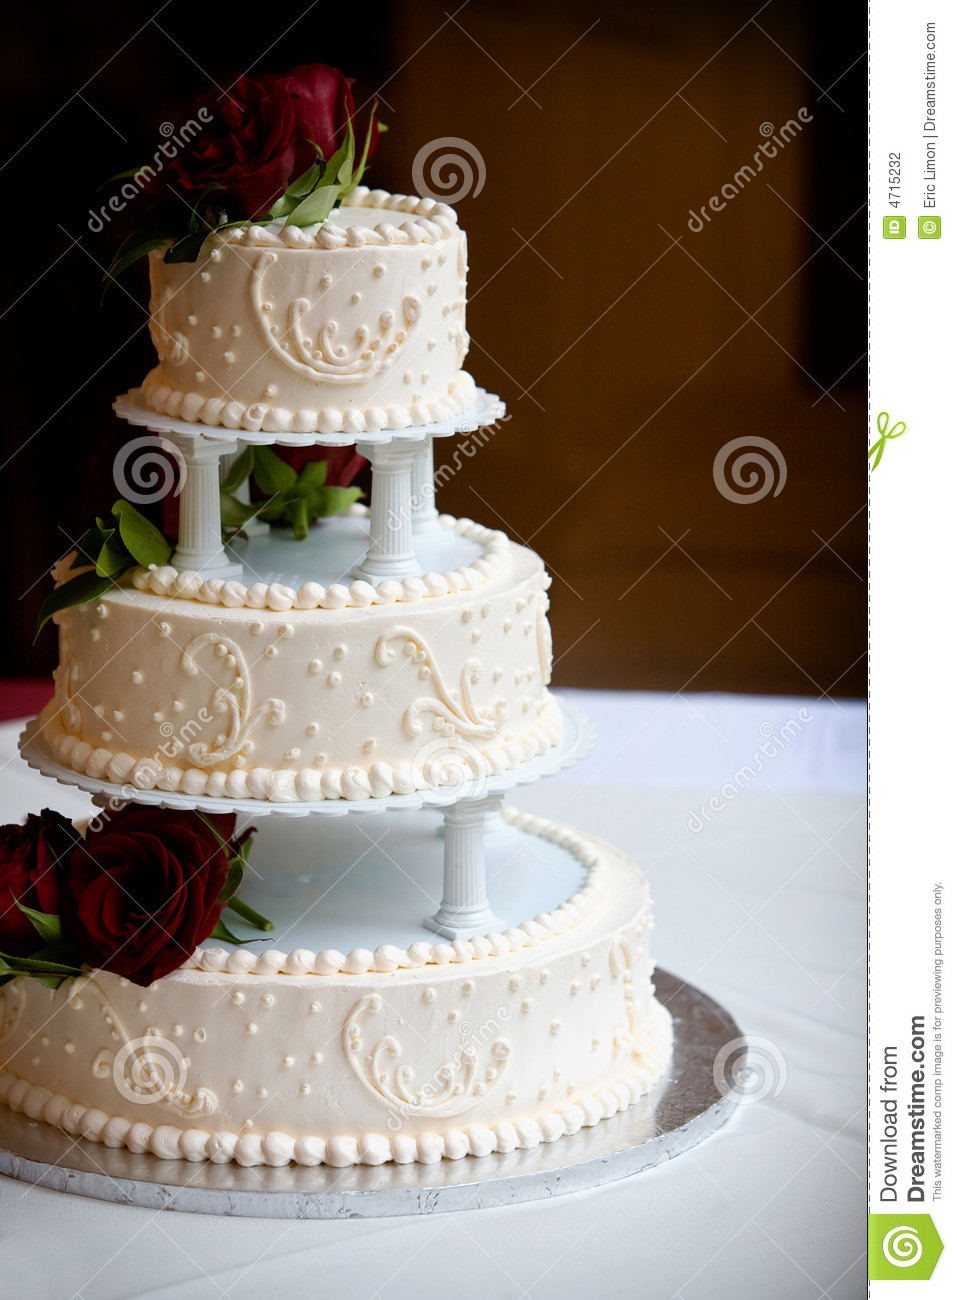 Wedding Cakes Three Tiers  Wedding Cake With Three Tiers Stock Image of